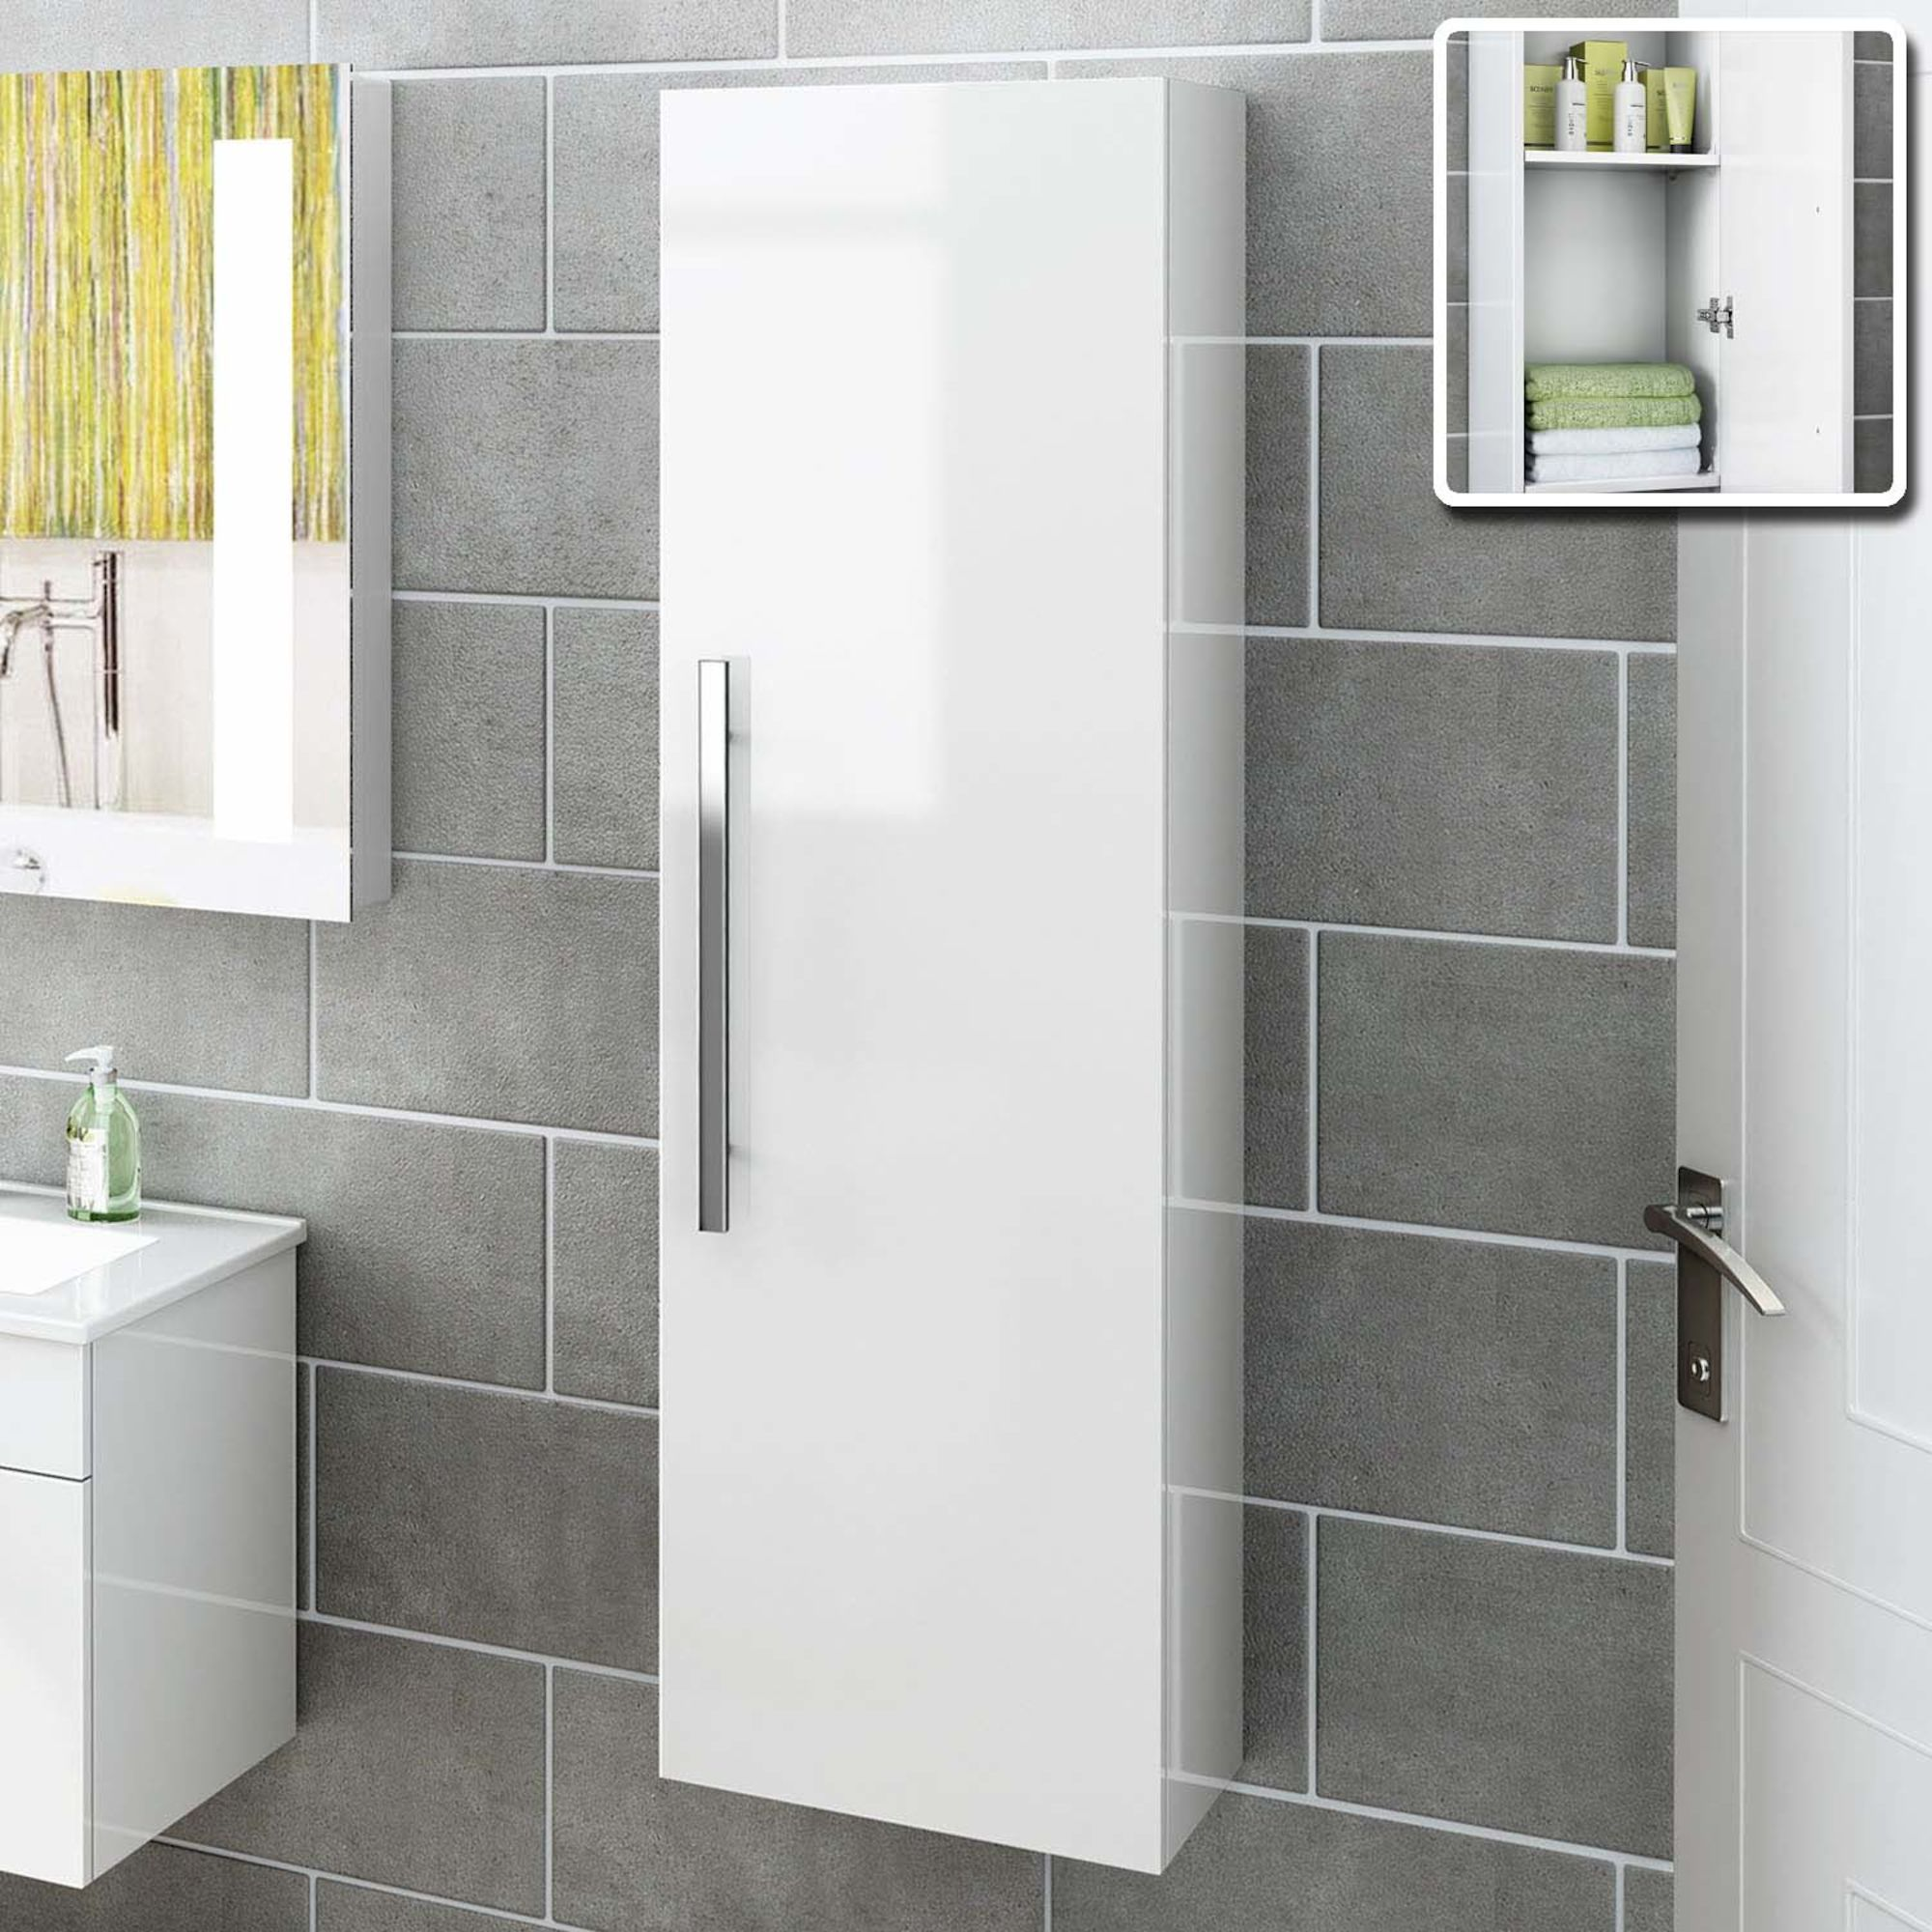 Wall Mounted Bathroom Cabinets By Ruth On Bathrooms Tall Cabinet Storage White Bathroom Furniture